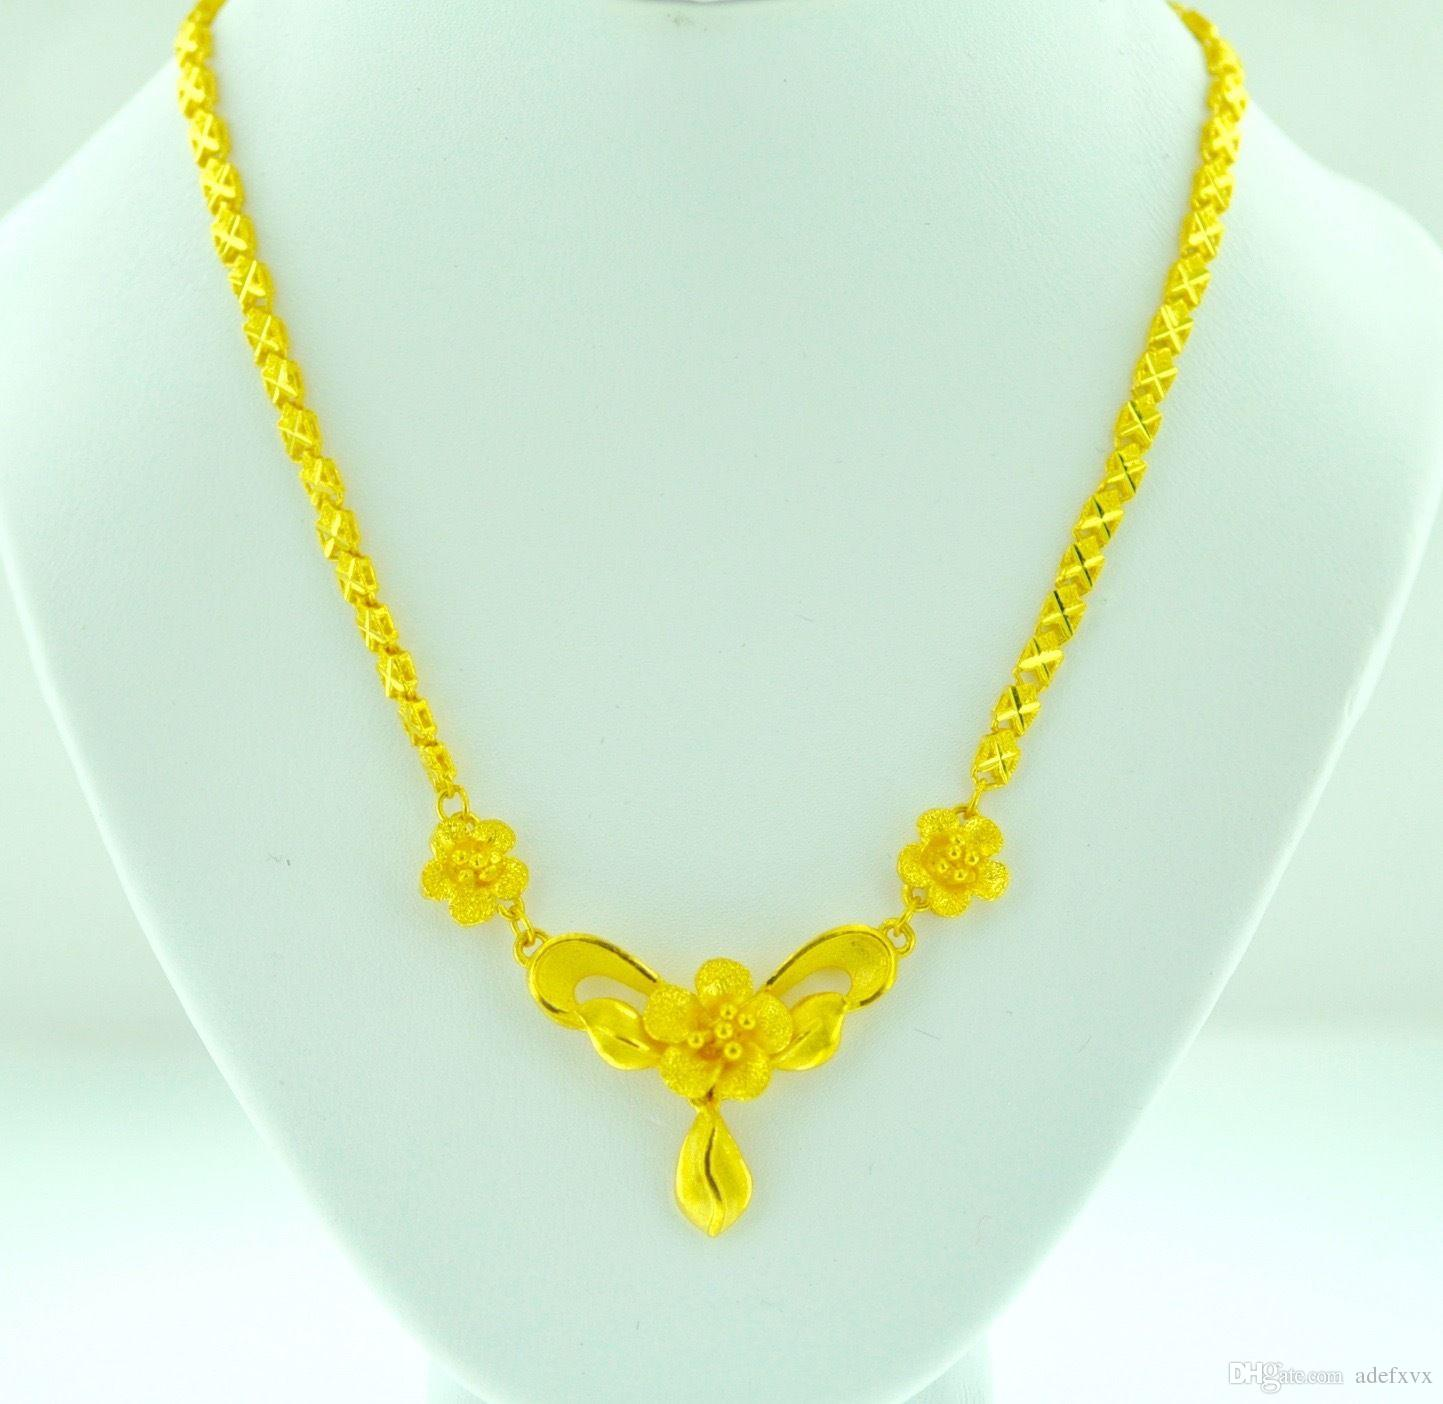 Wholesale 24k 9999 solid yellow gold ladies flower necklace 18 wholesale 24k 9999 solid yellow gold ladies flower necklace 18 inches 2200 gram wedding costume jewellery jewelry from adefxvx 583 dhgate mightylinksfo Choice Image